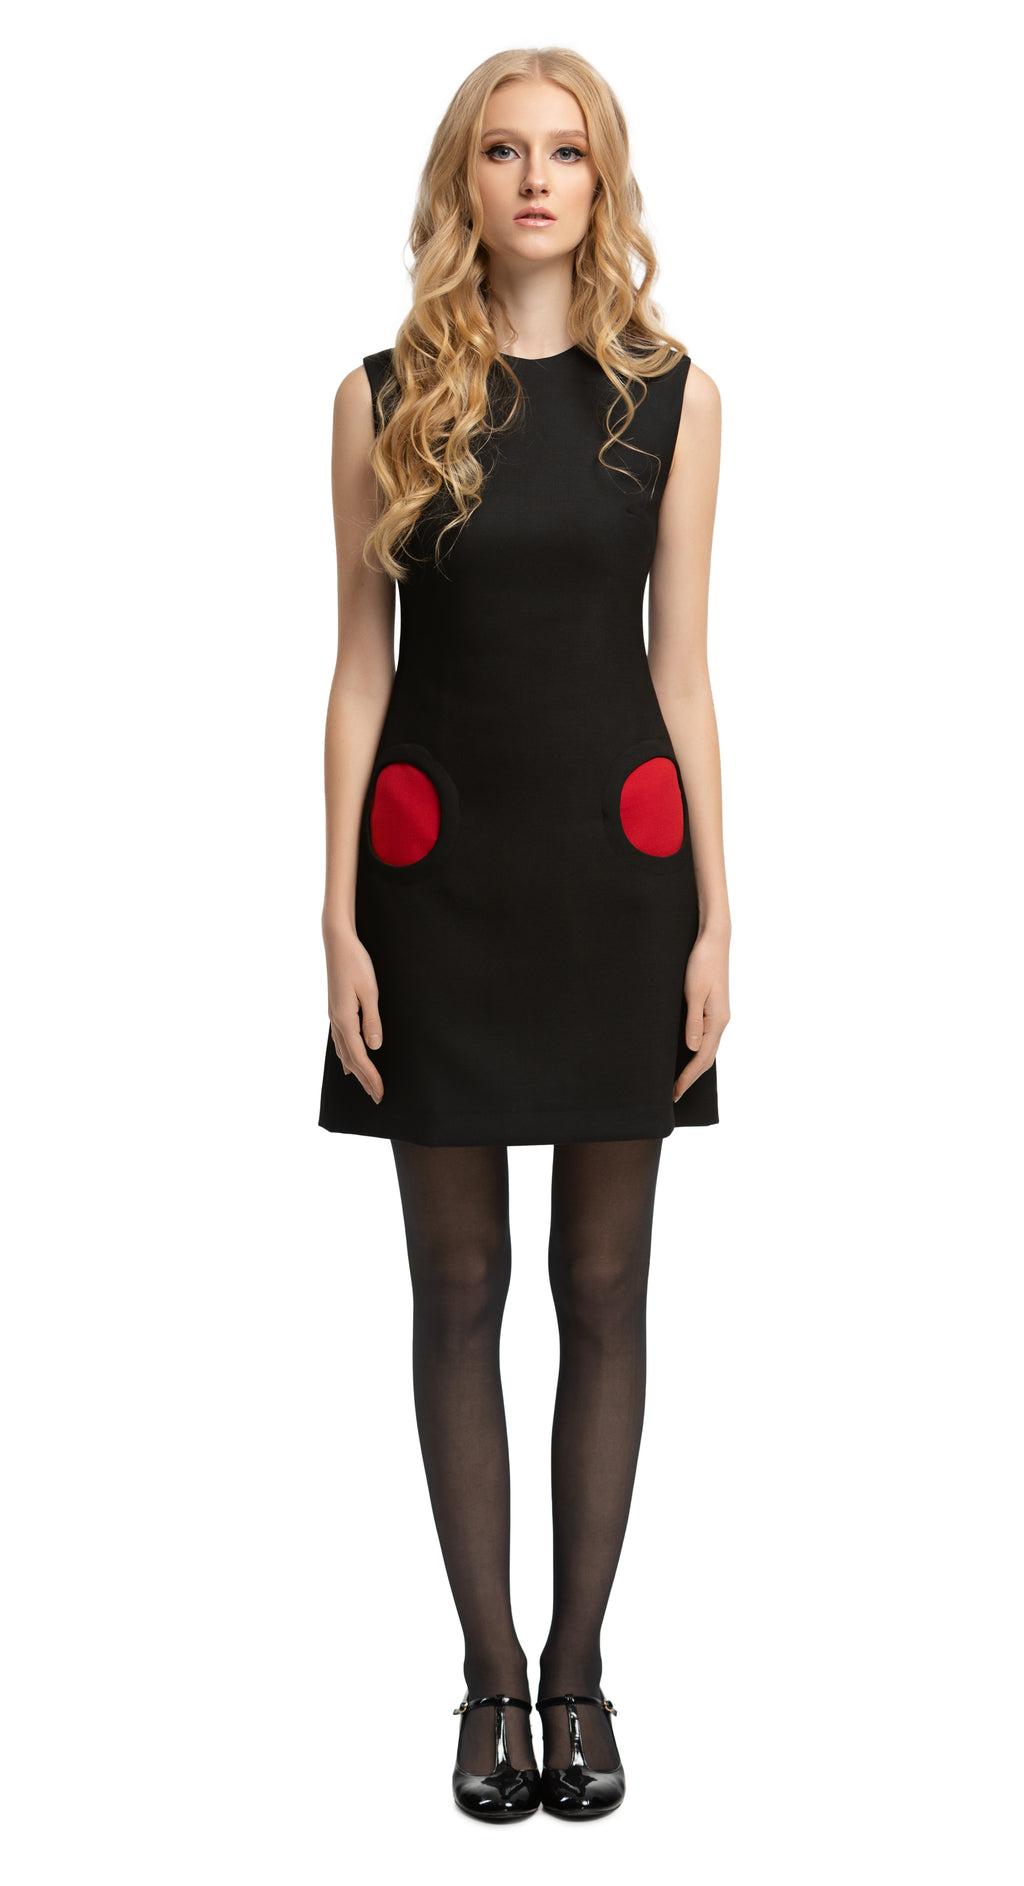 MARMALADE Mod Style Black Dress with Red Circle Pockets